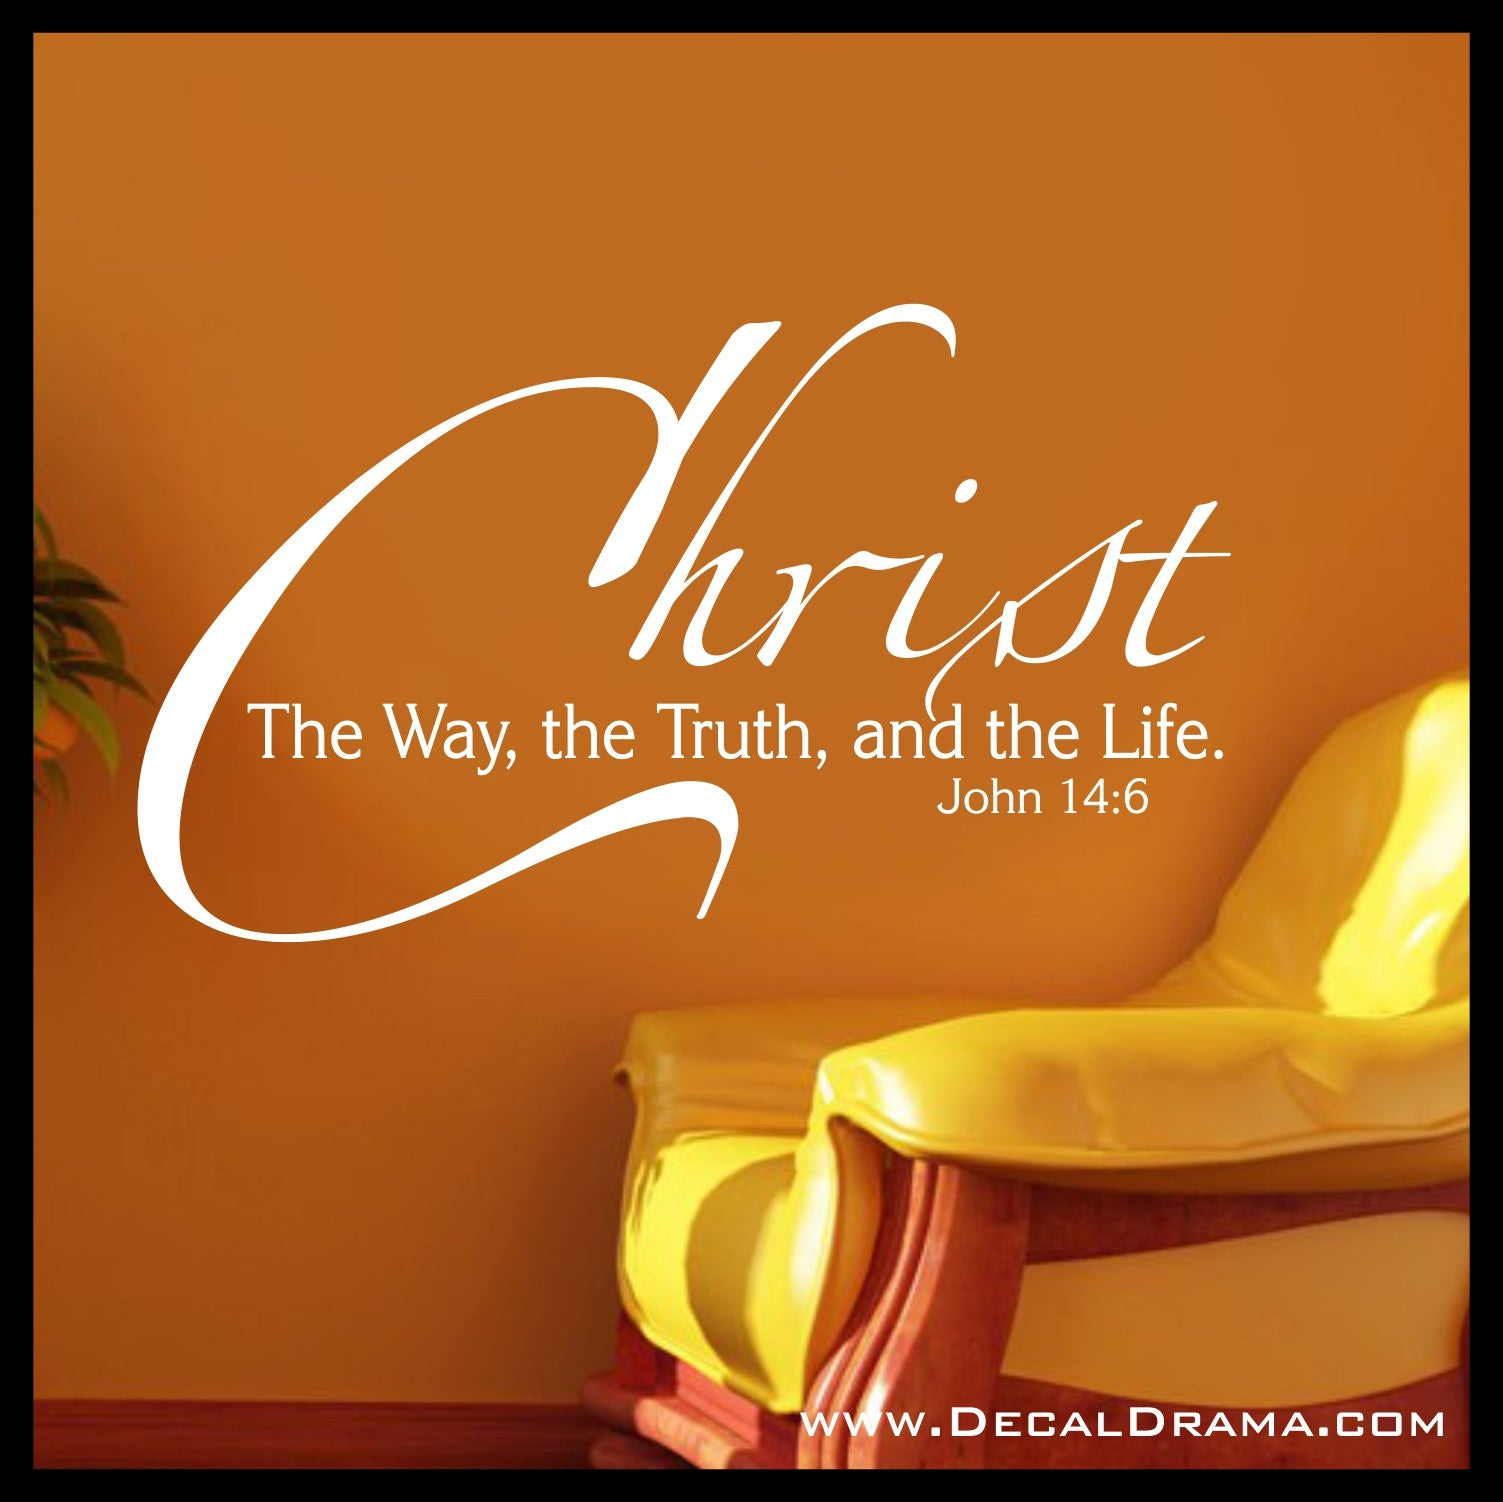 Christ the Way the Truth and the Life - John 14:6, Bible New Testament Scripture Verse Vinyl Wall Decal